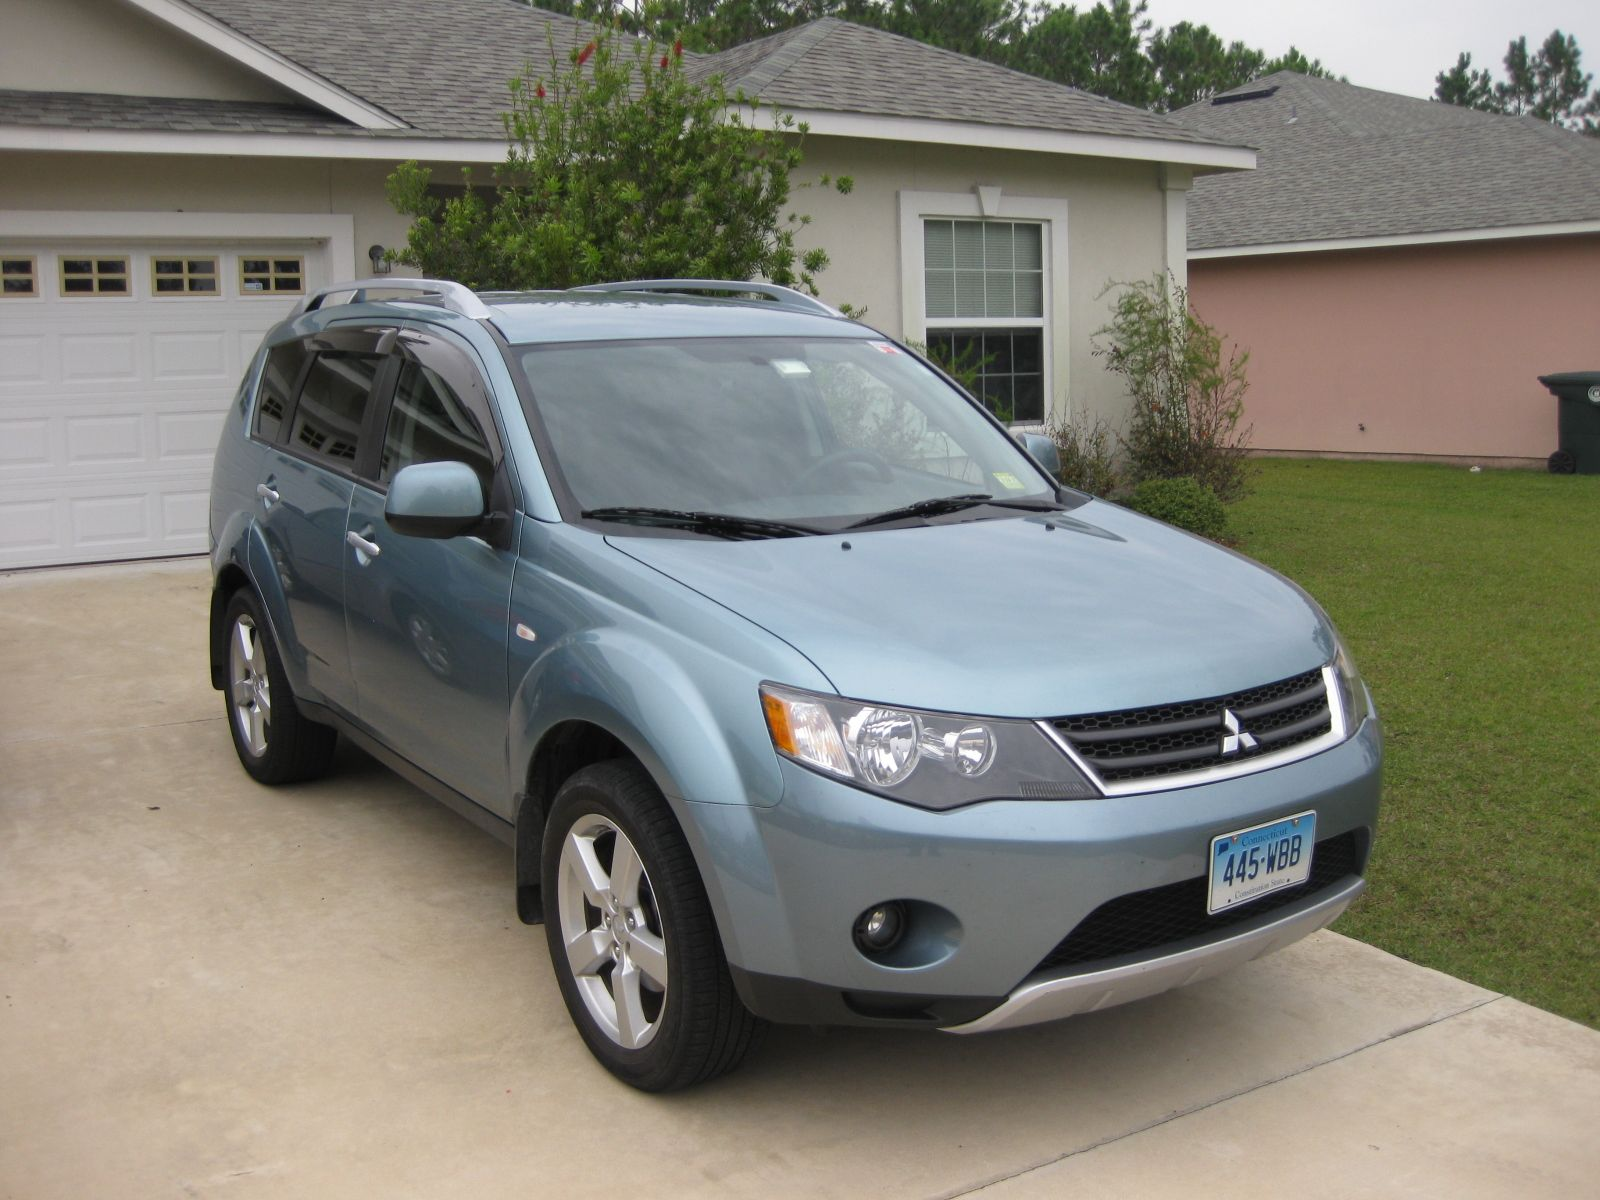 awesome 07 mitsubishi outlander owners manual mitsubishi rh pinterest com 2009 mitsubishi outlander user manual 2009 mitsubishi outlander owners manual pdf